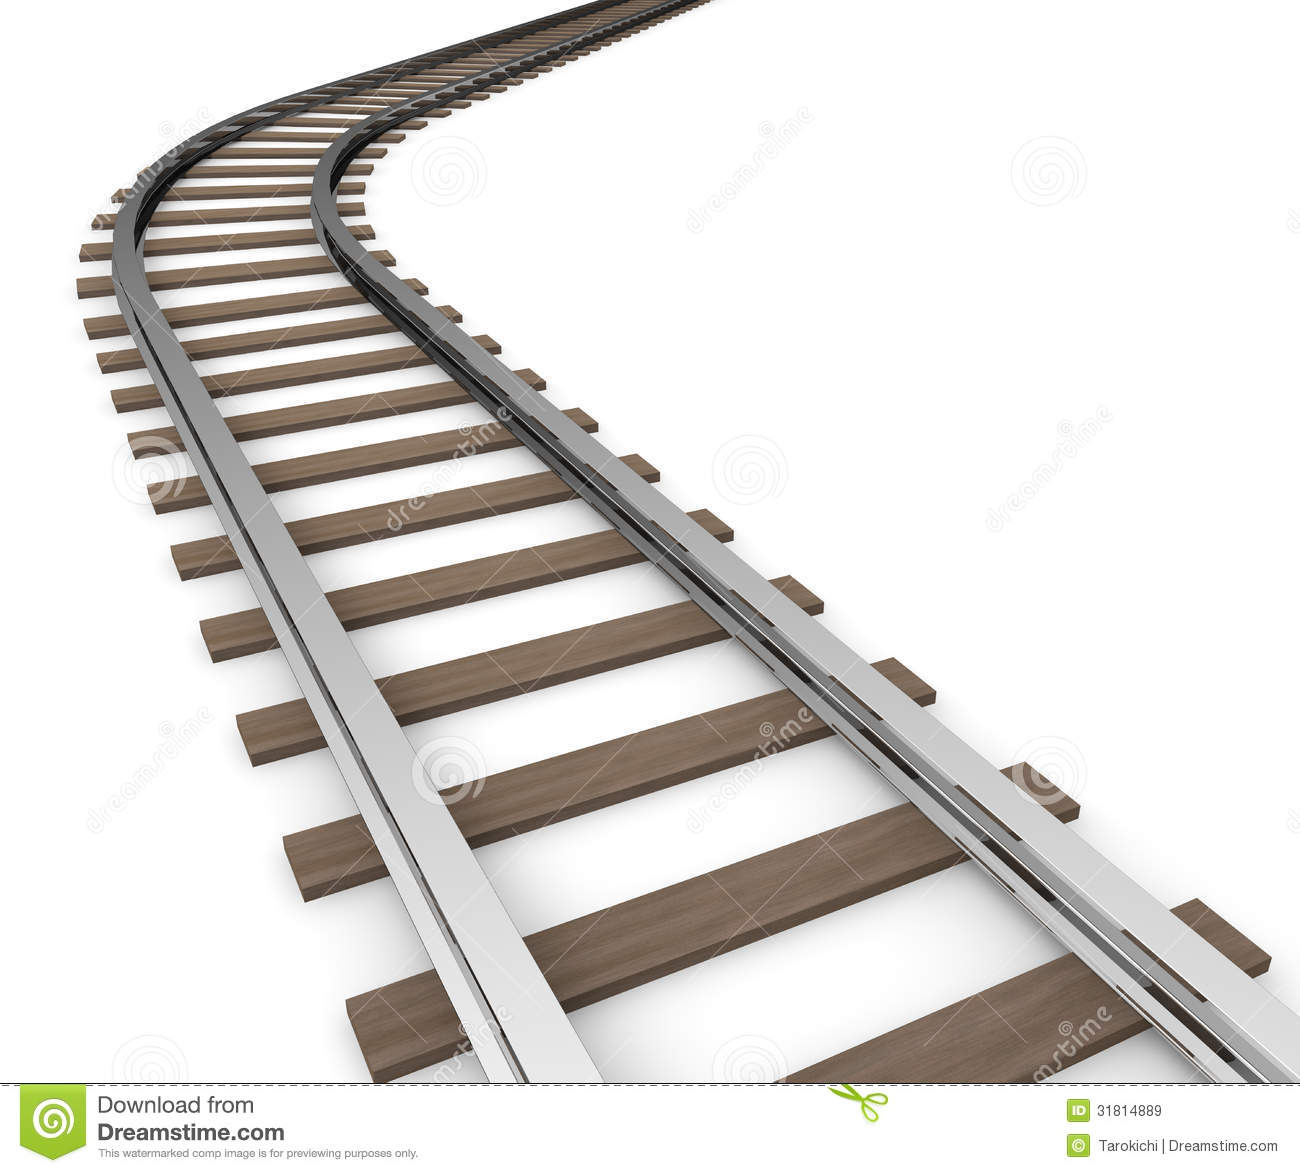 Clipart railway svg free stock Railway clipart 5 » Clipart Station svg free stock